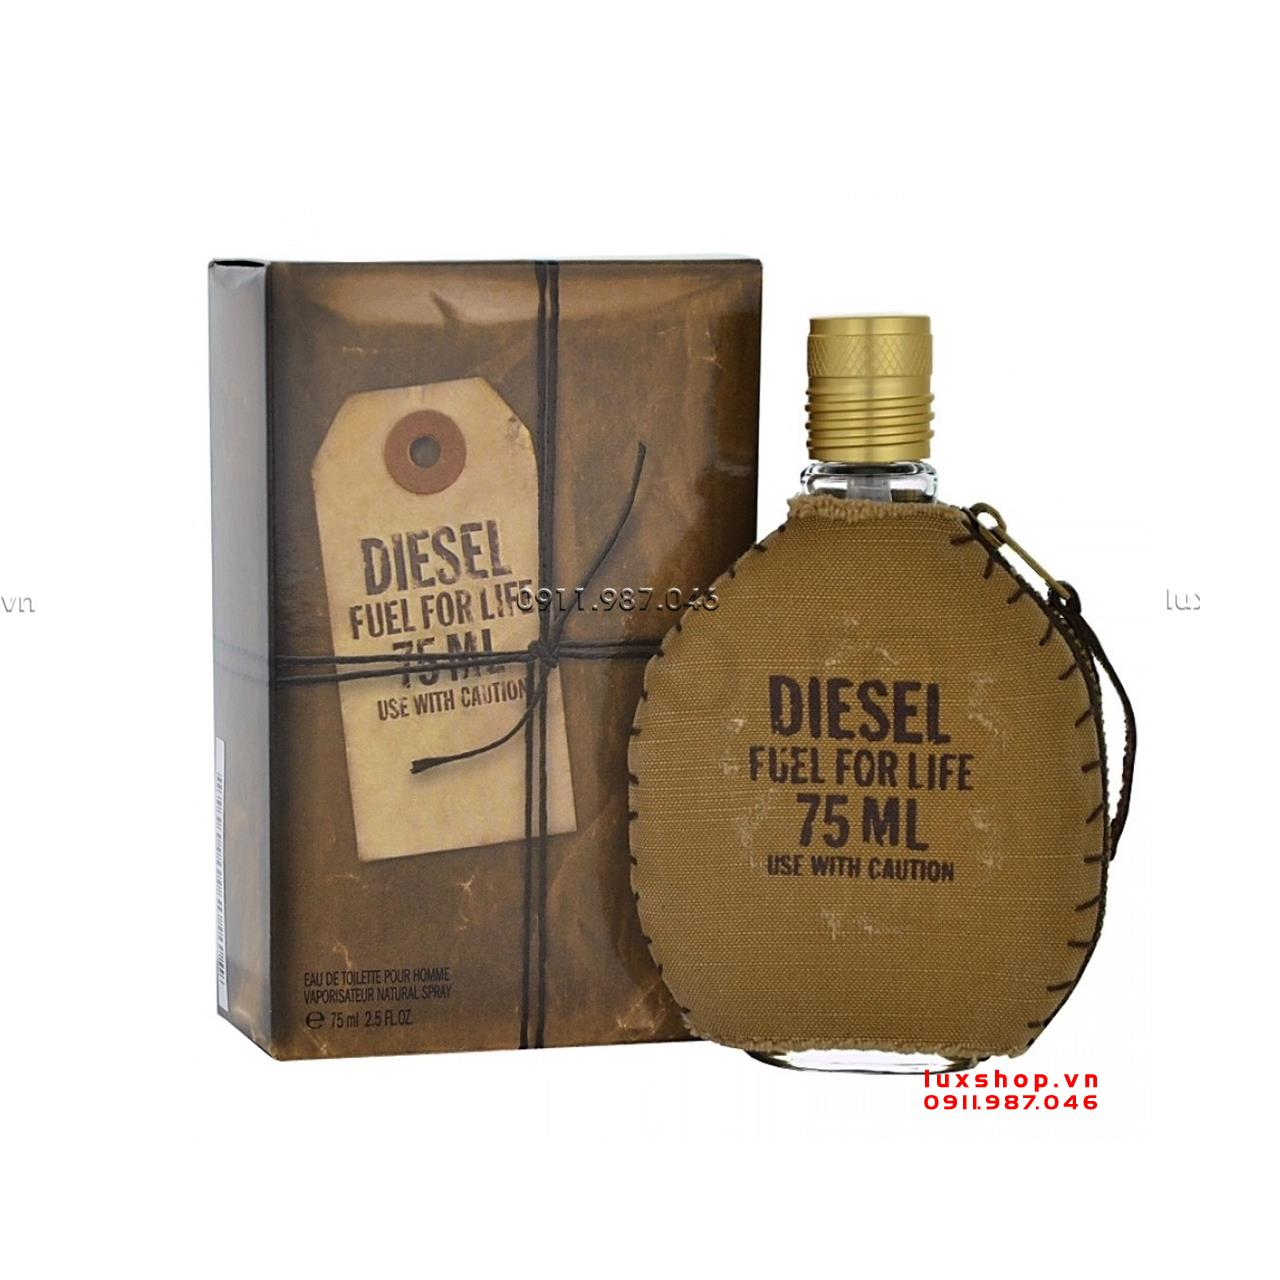 nuoc-hoa-nam-diesel-fuel-for-life-pour-homme-edt-125ml-chinh-hang-pn100047